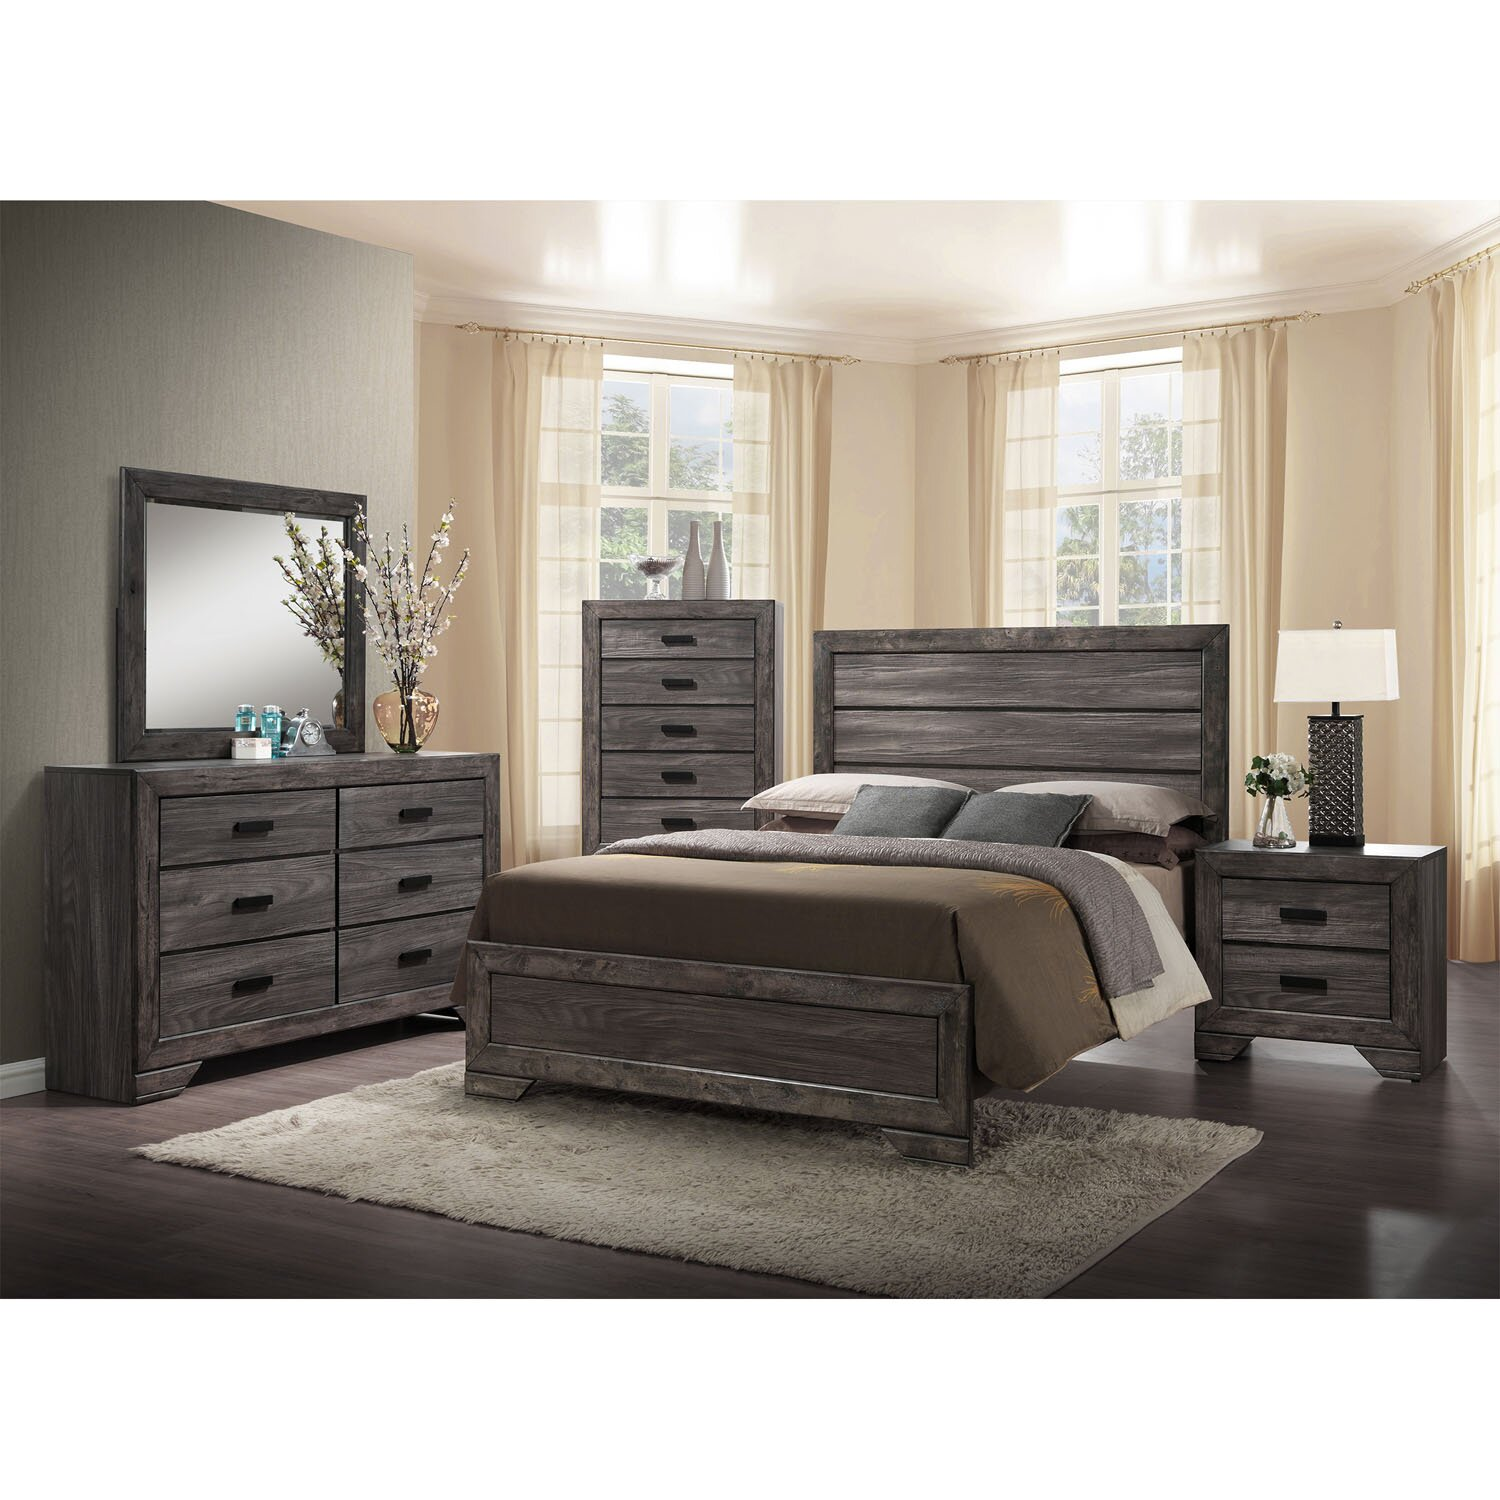 Drexel Panel 5 Piece Bedroom Set